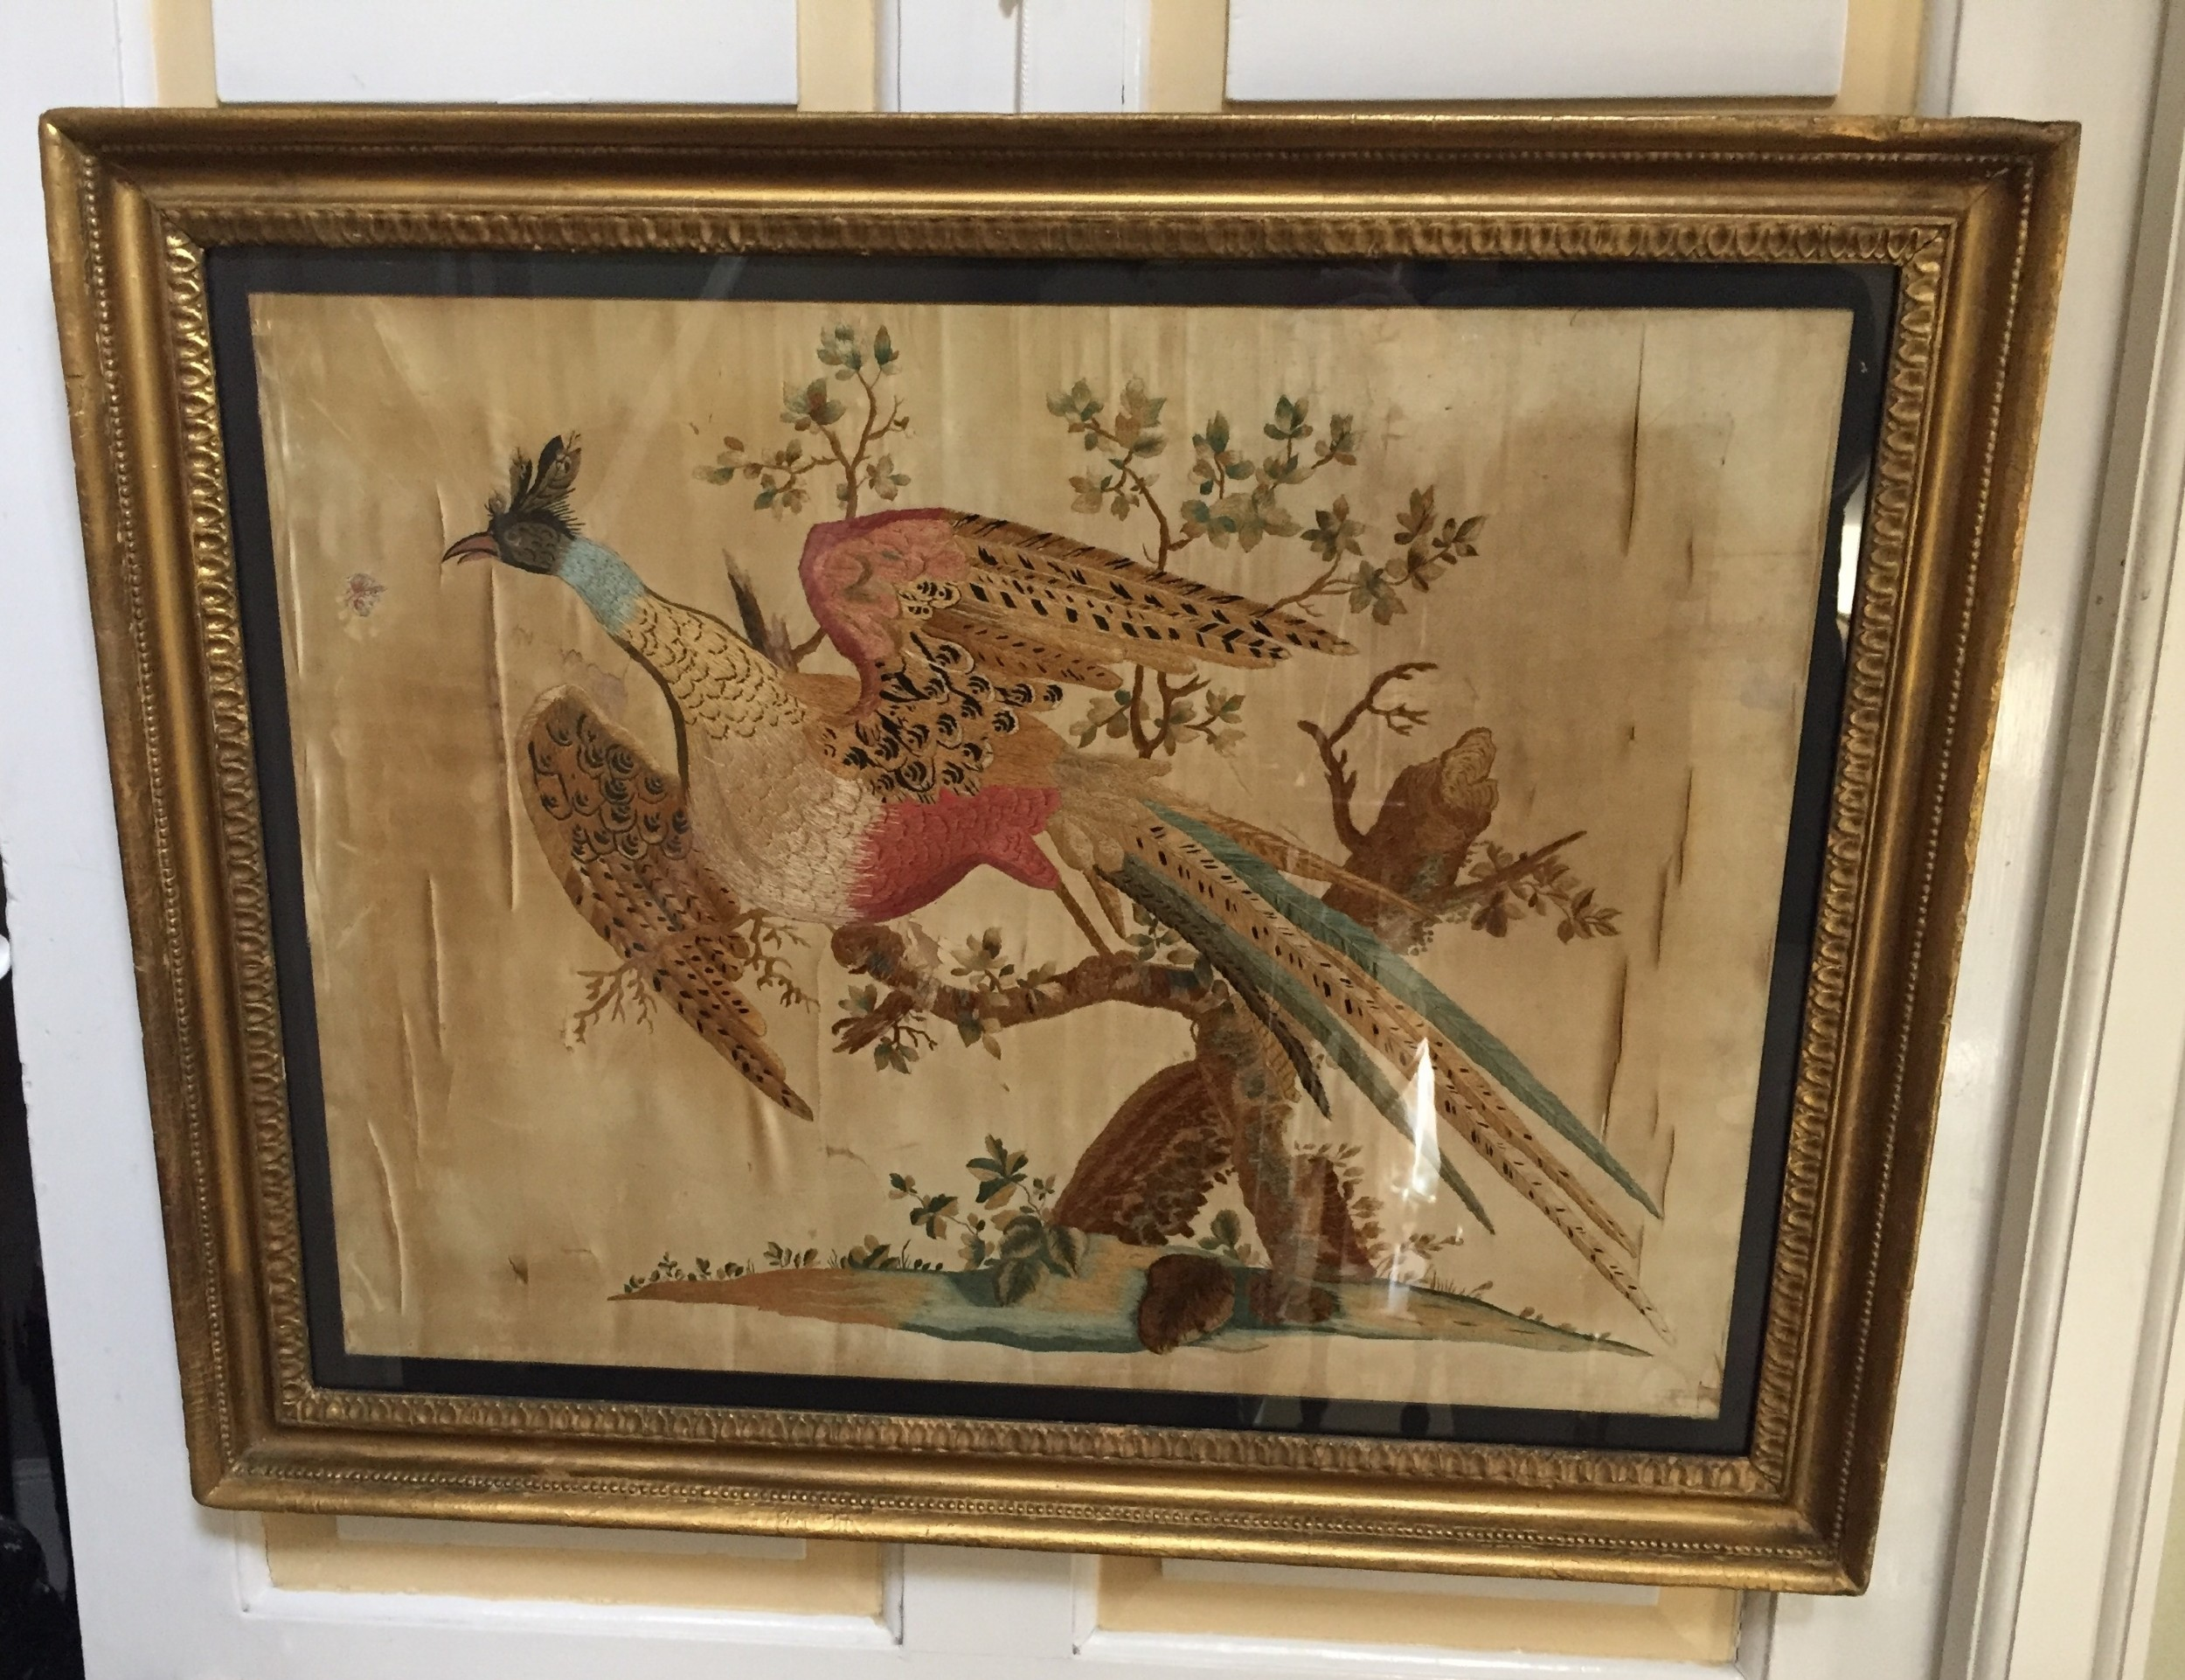 highly decorative early c19th english silk needlework picture of an exotic chinese pheasant in original giltwood frame